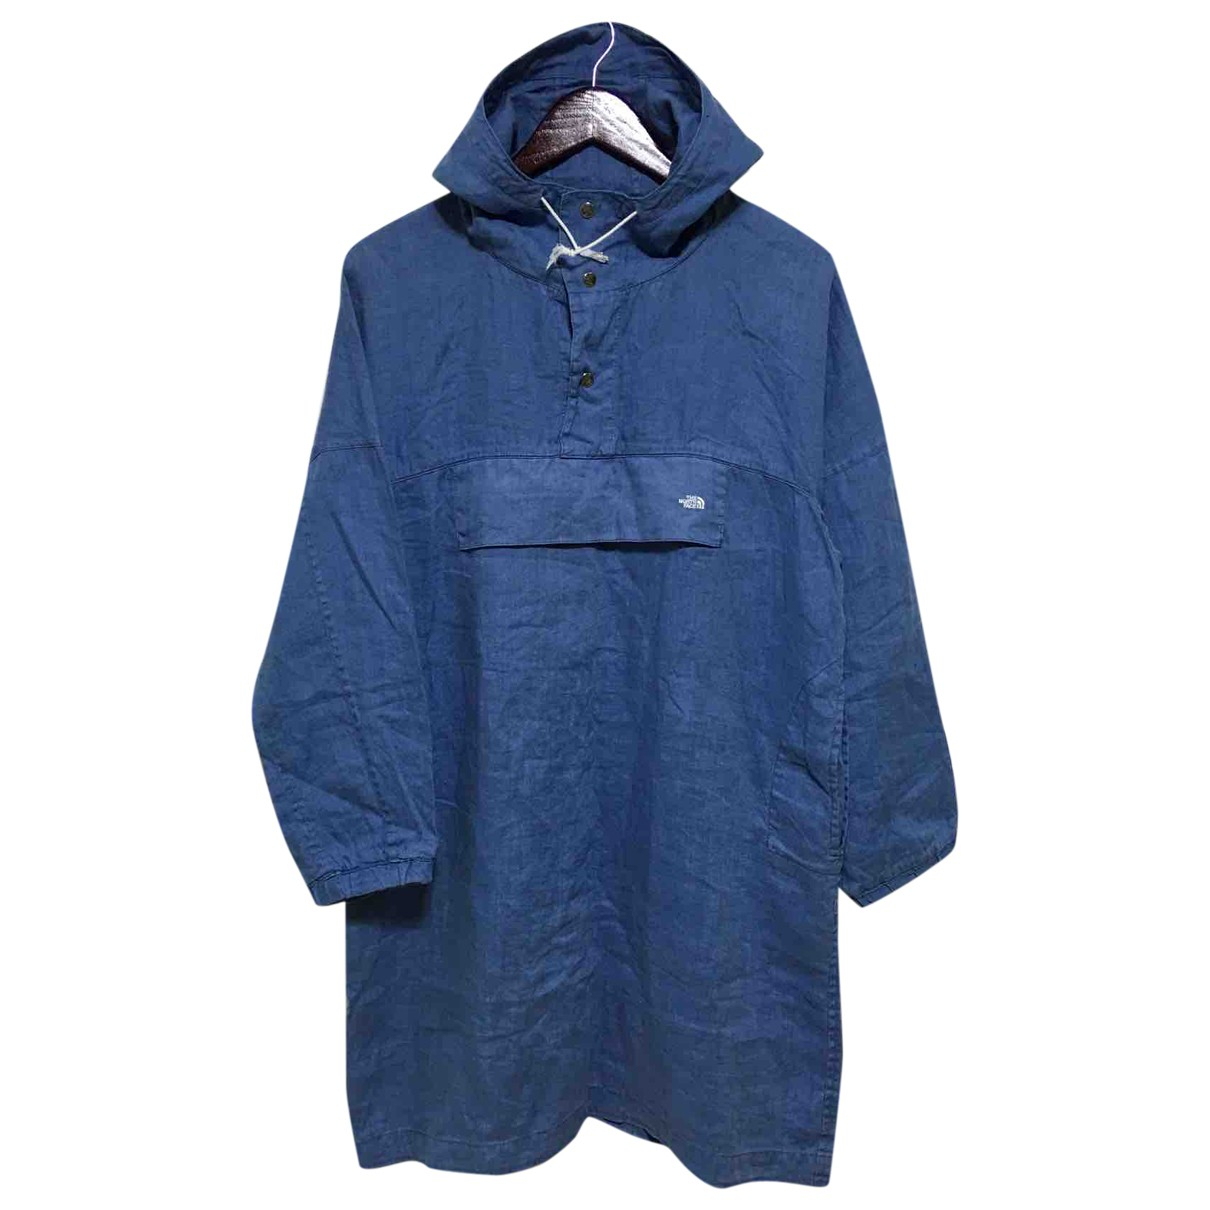 The North Face \N Blue Cotton jacket for Women S International